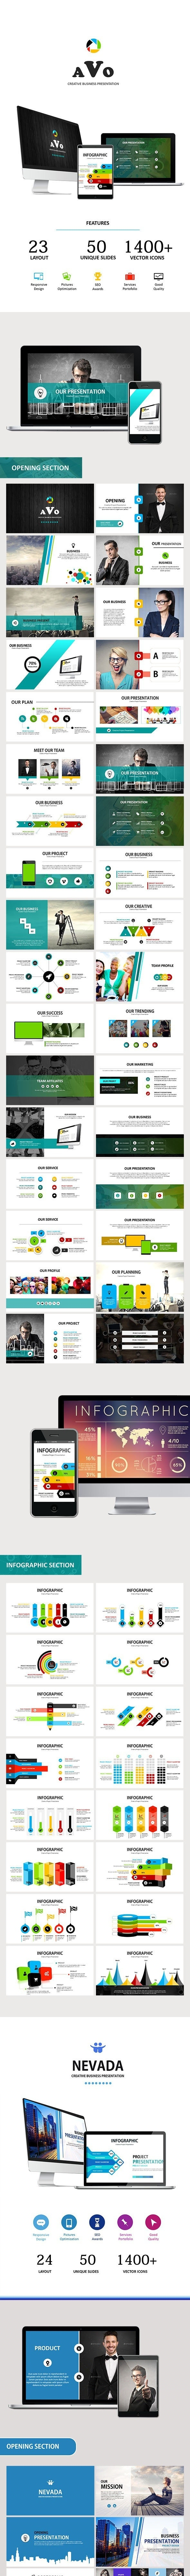 3 IN 1 - Powerpoint Business Presentation - Business PowerPoint Templates